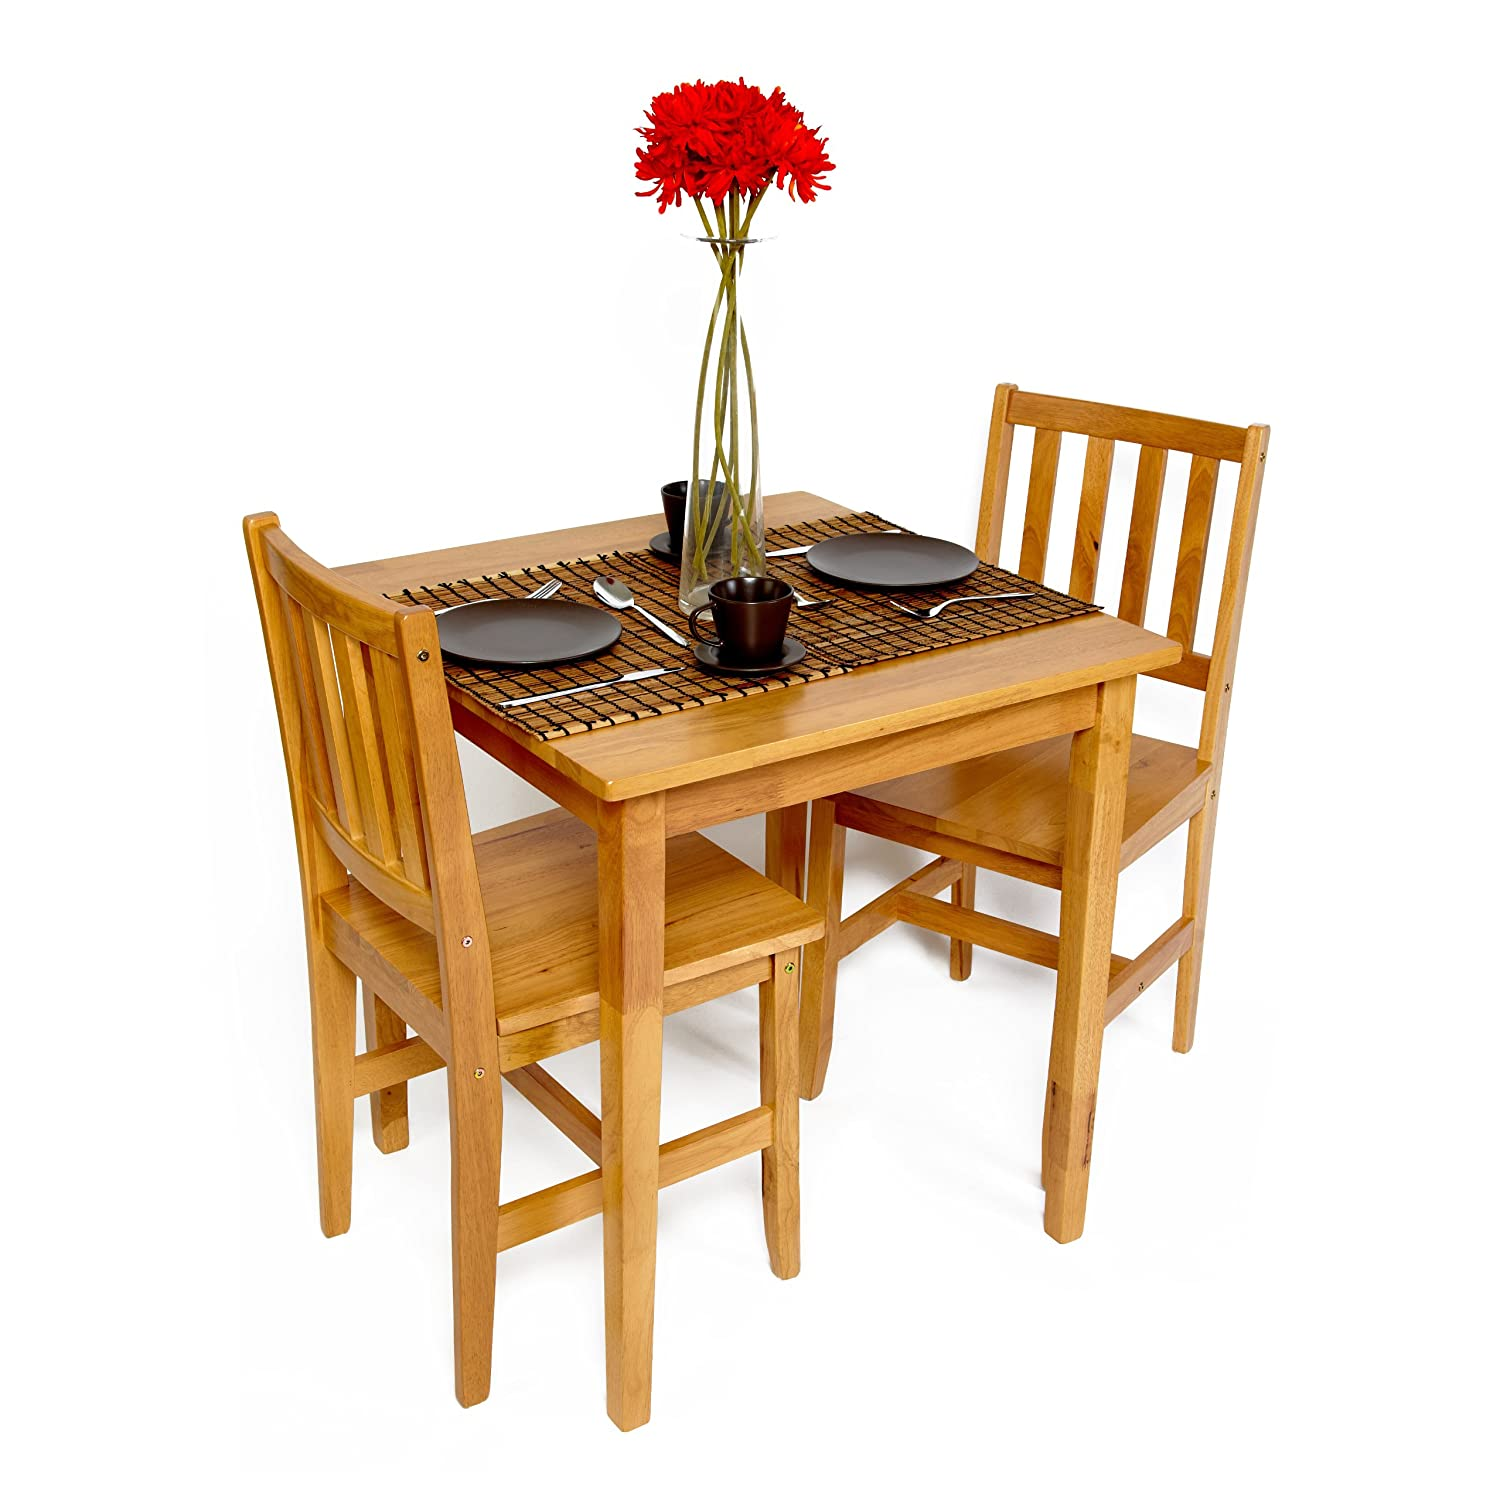 Table and chairs set dining bistro small cafe tables wood for Small dining set with bench